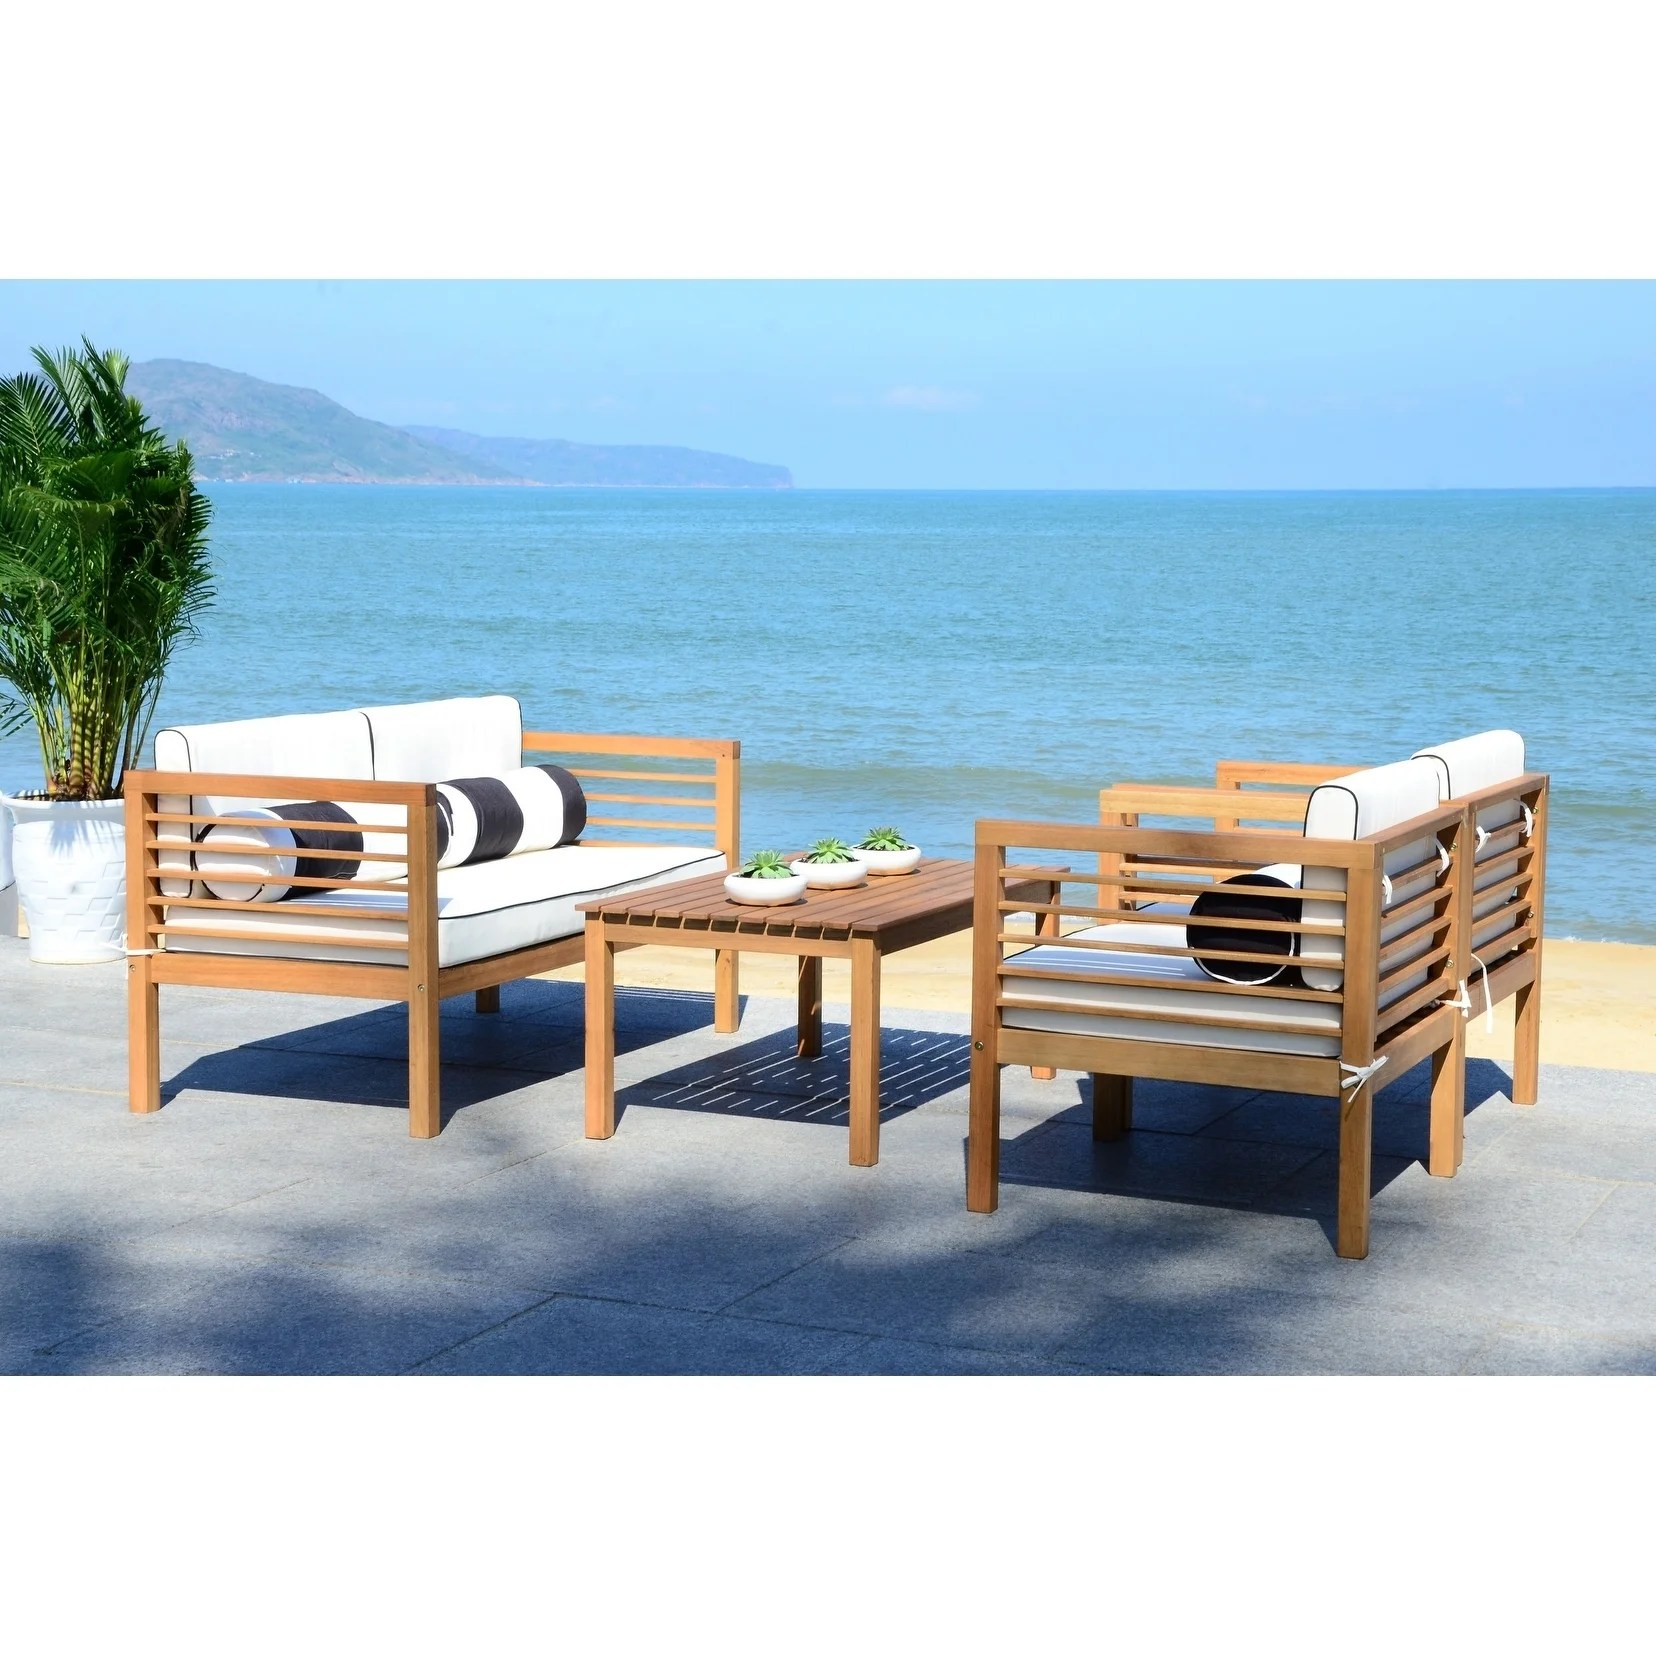 Table Lounge Garden Furniture Couch Rattan Png Download 1500 Buy Outdoor Sofas Chairs Sectionals Online At Overstock Our